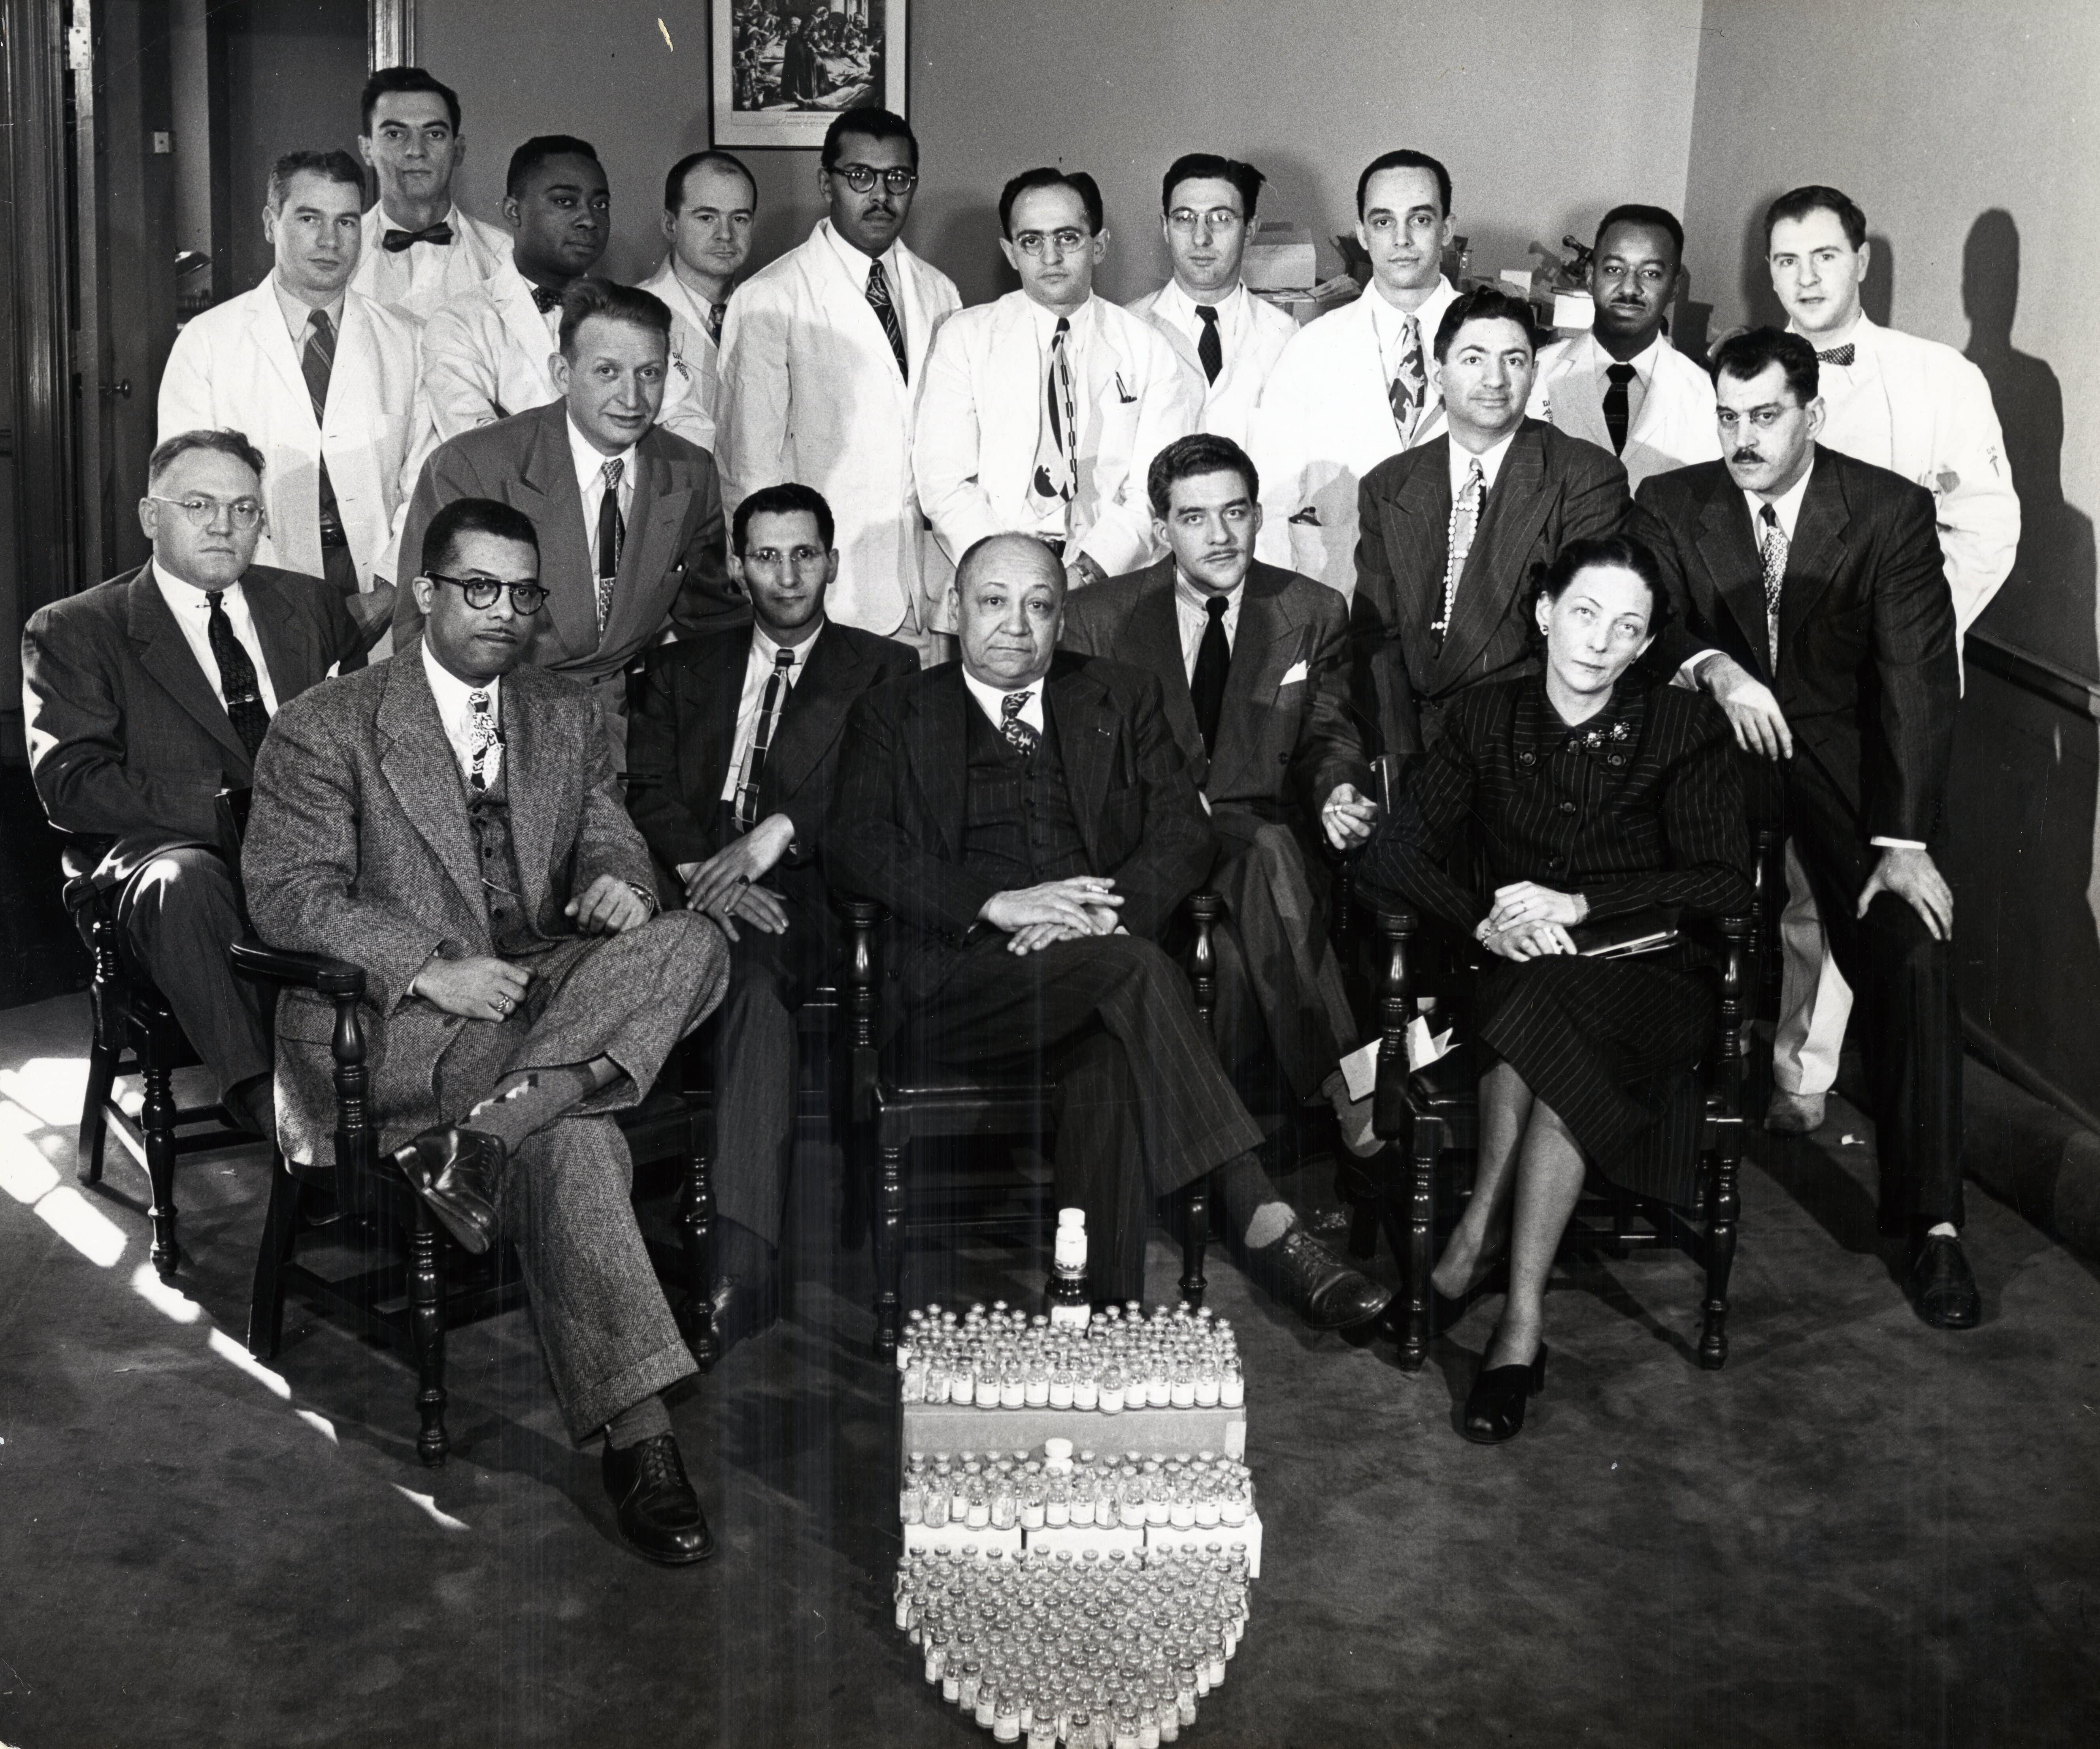 Myra Logan (front row, right) with Louis Tompkins Wright (front row, center) and other members of the Aureomycin research group at Harlem Hospital (1949).